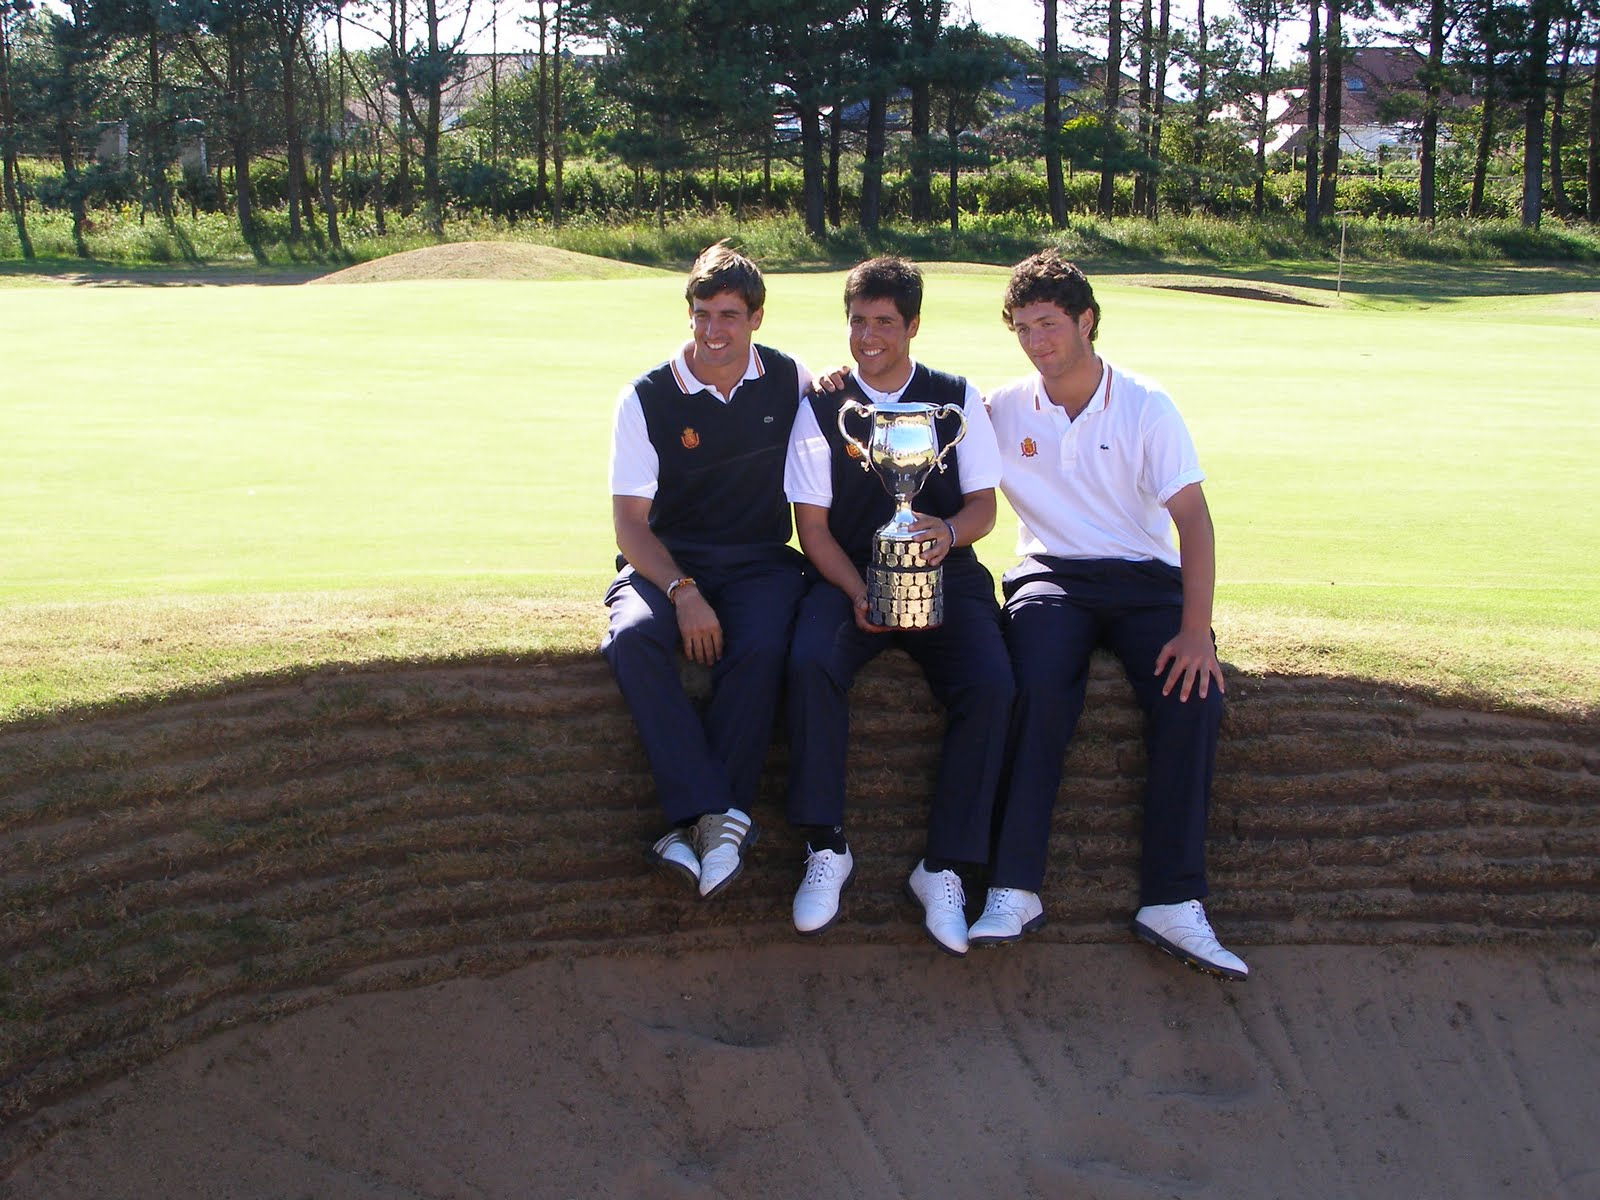 With his coach and his caddy, Adrian can bask in the glorious weather and ...